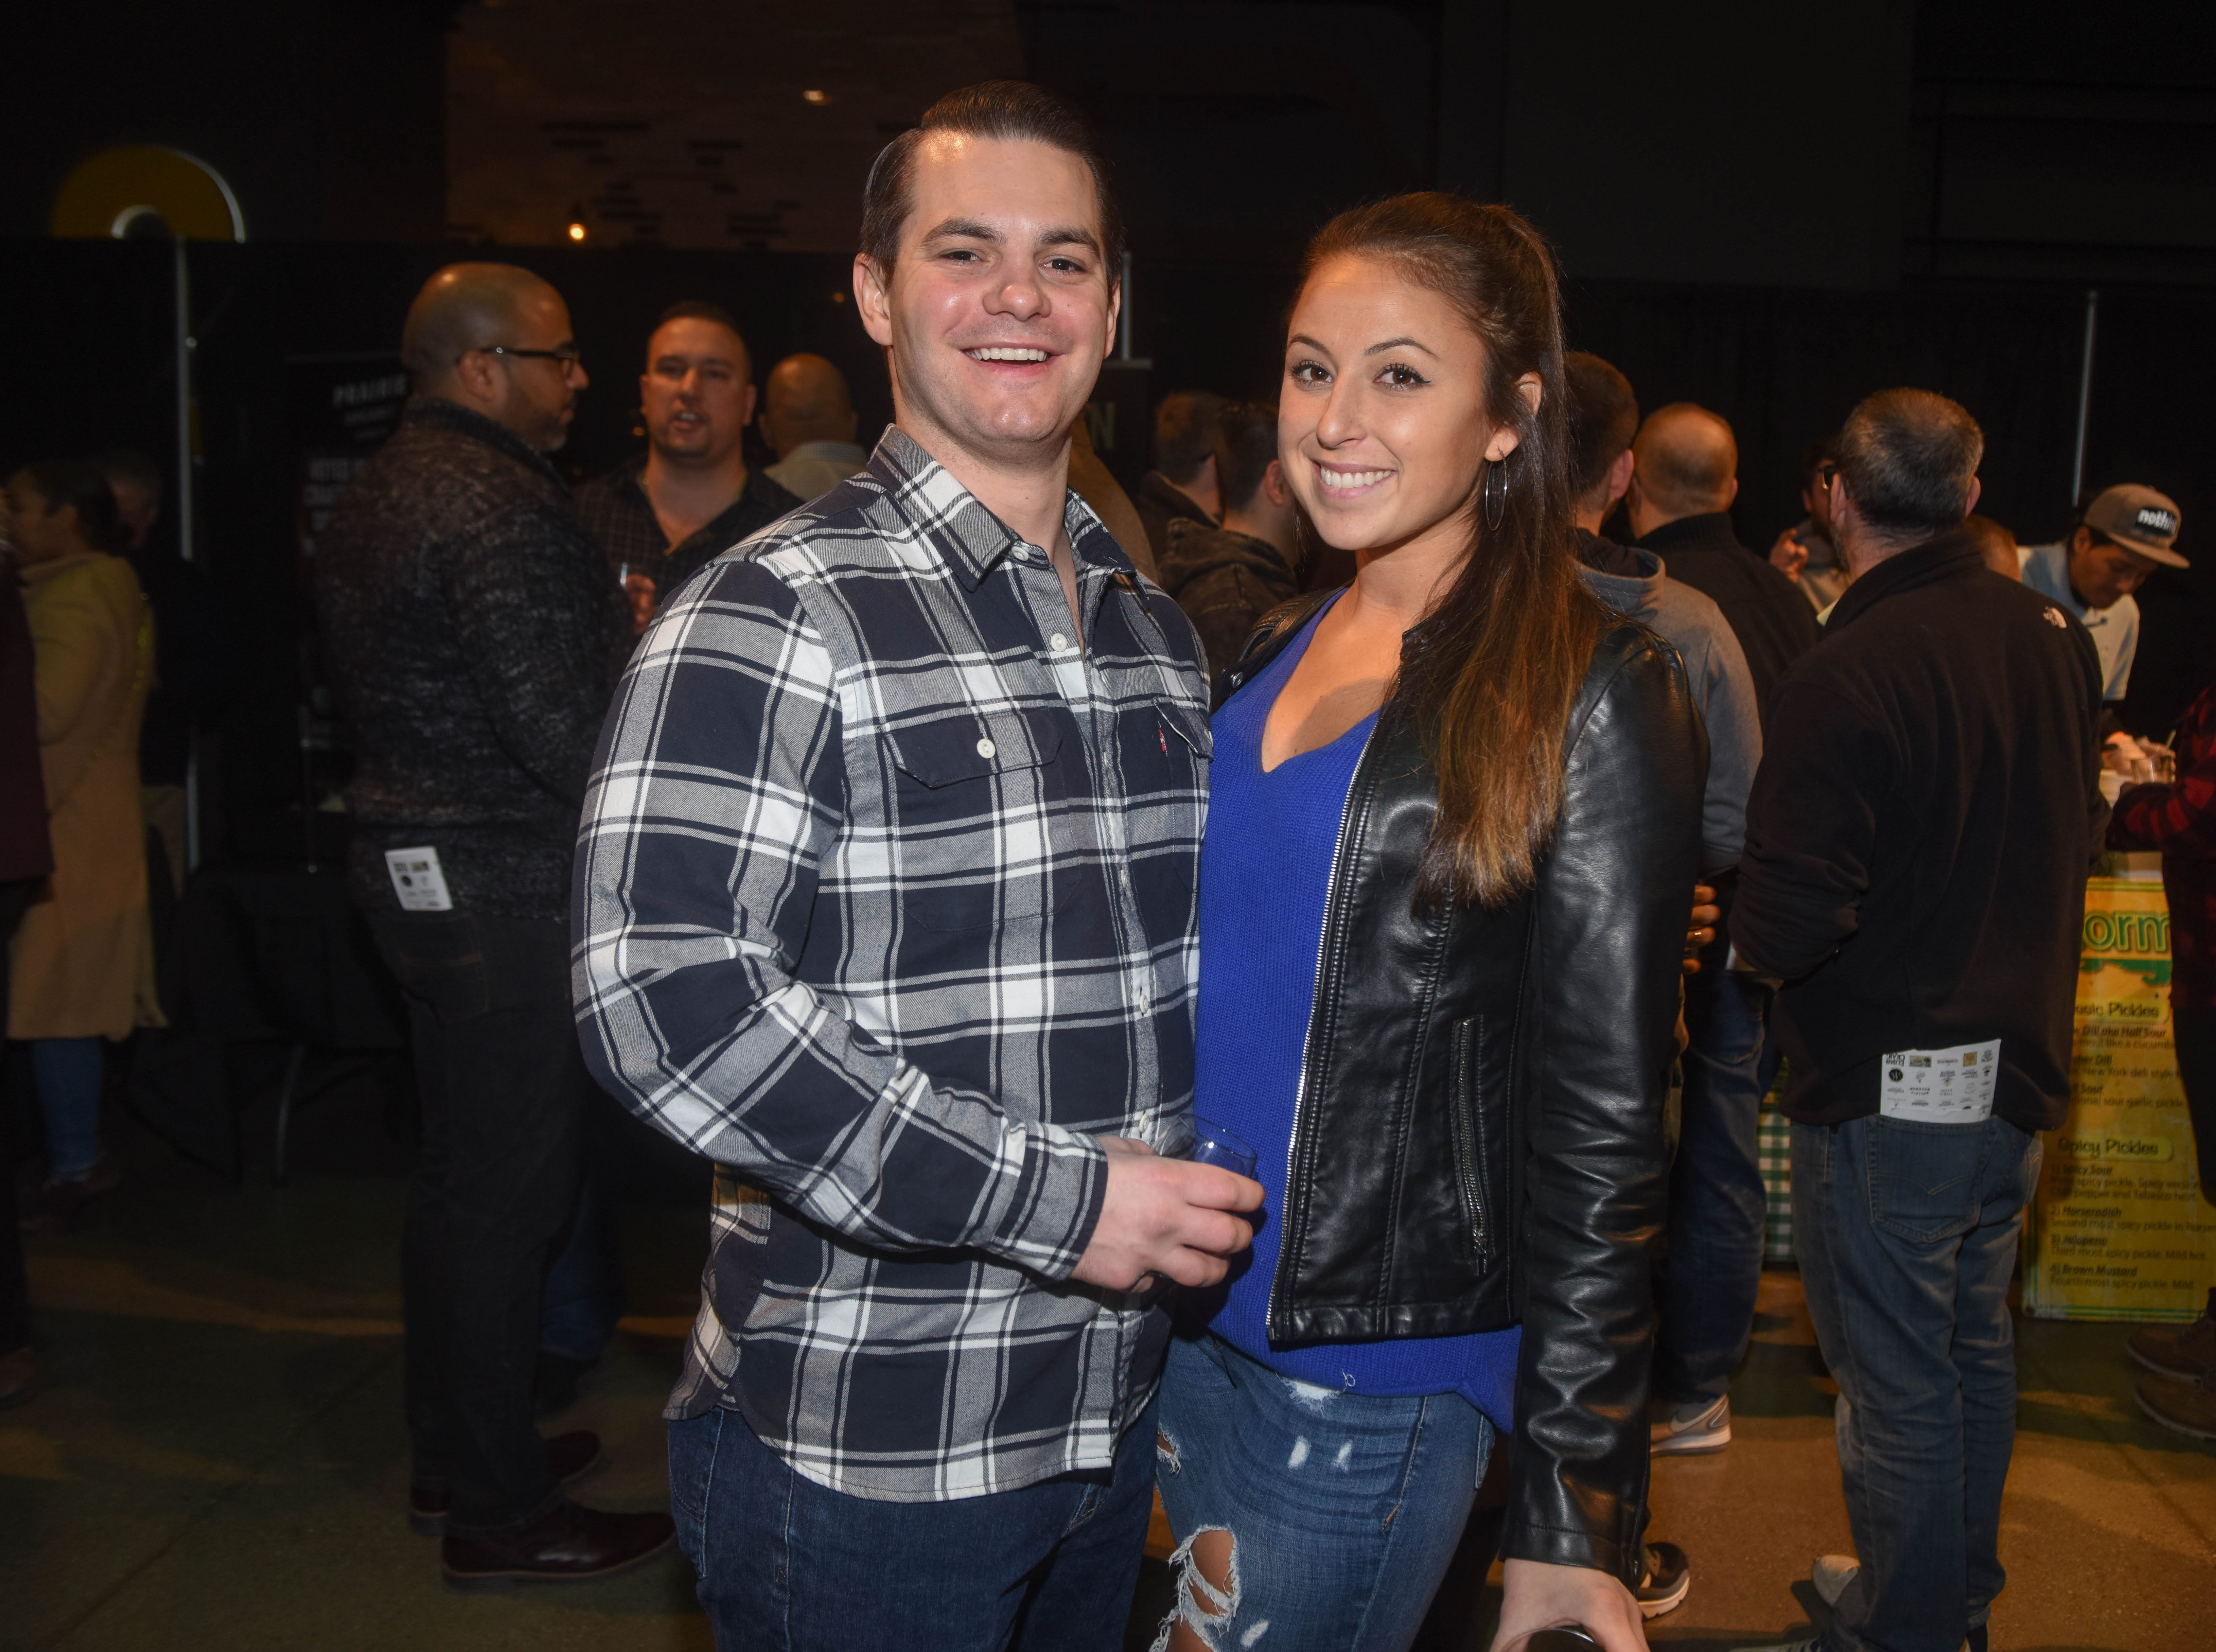 Collin and Kristen. Jersey City Whiskey Fest was held at Harborside Atrium. The event featured over 100 styles of whiskey and spirits. 02/01/2019